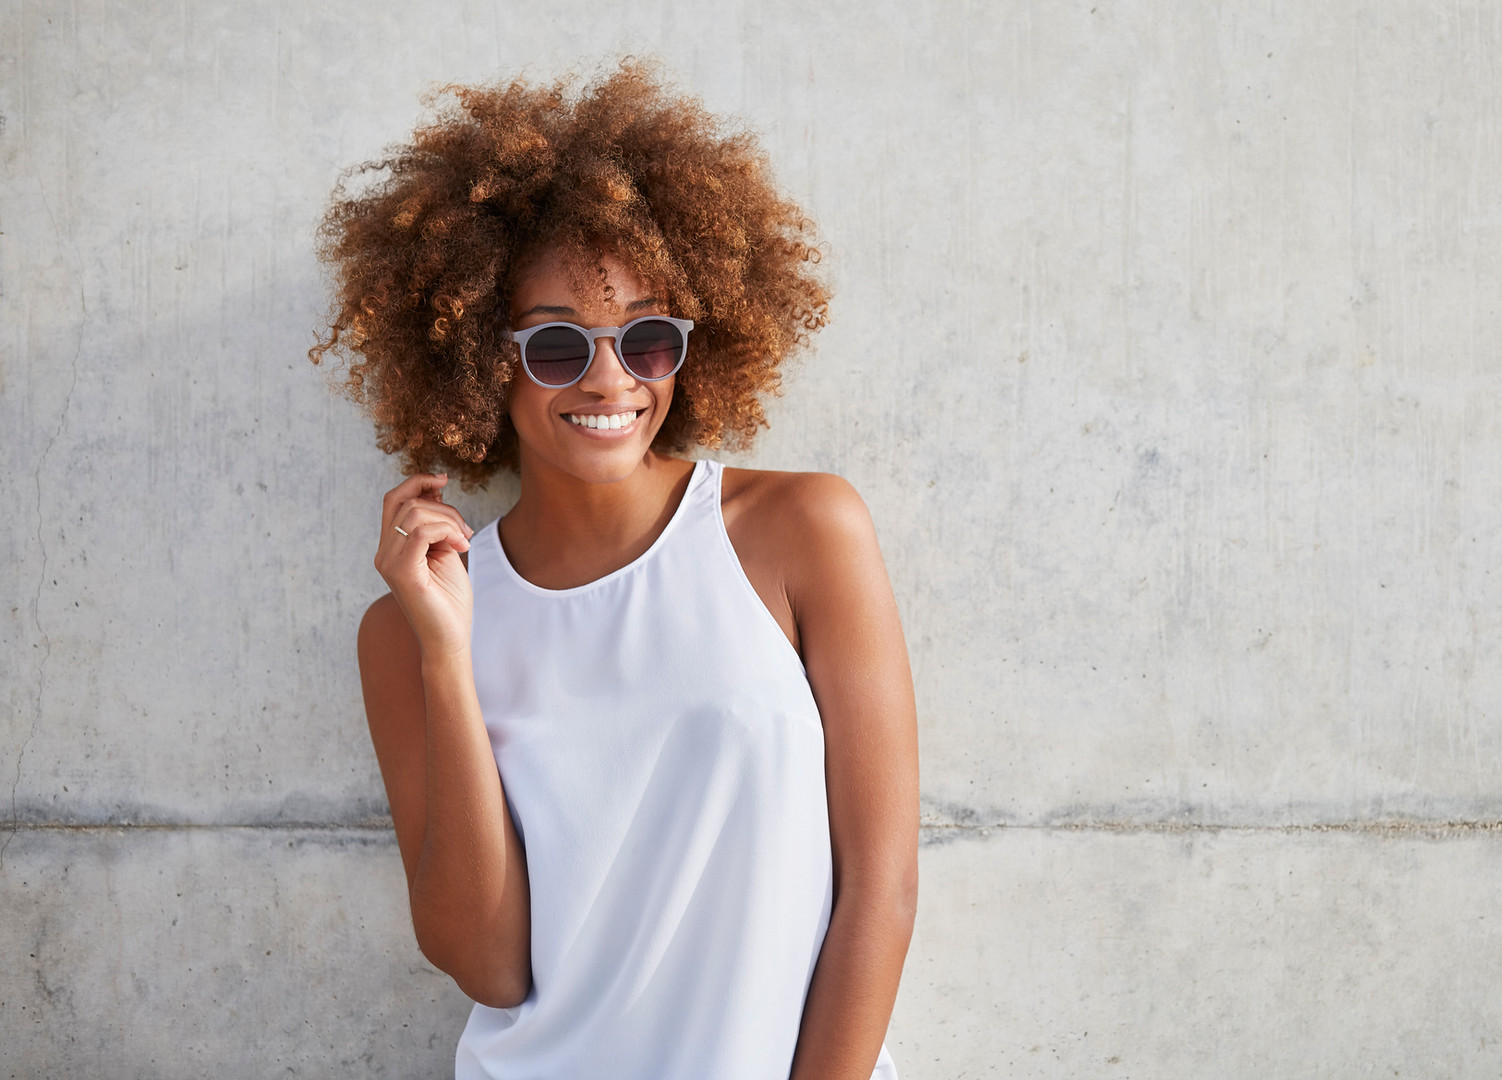 Model with Curly Hair and Sunglasses